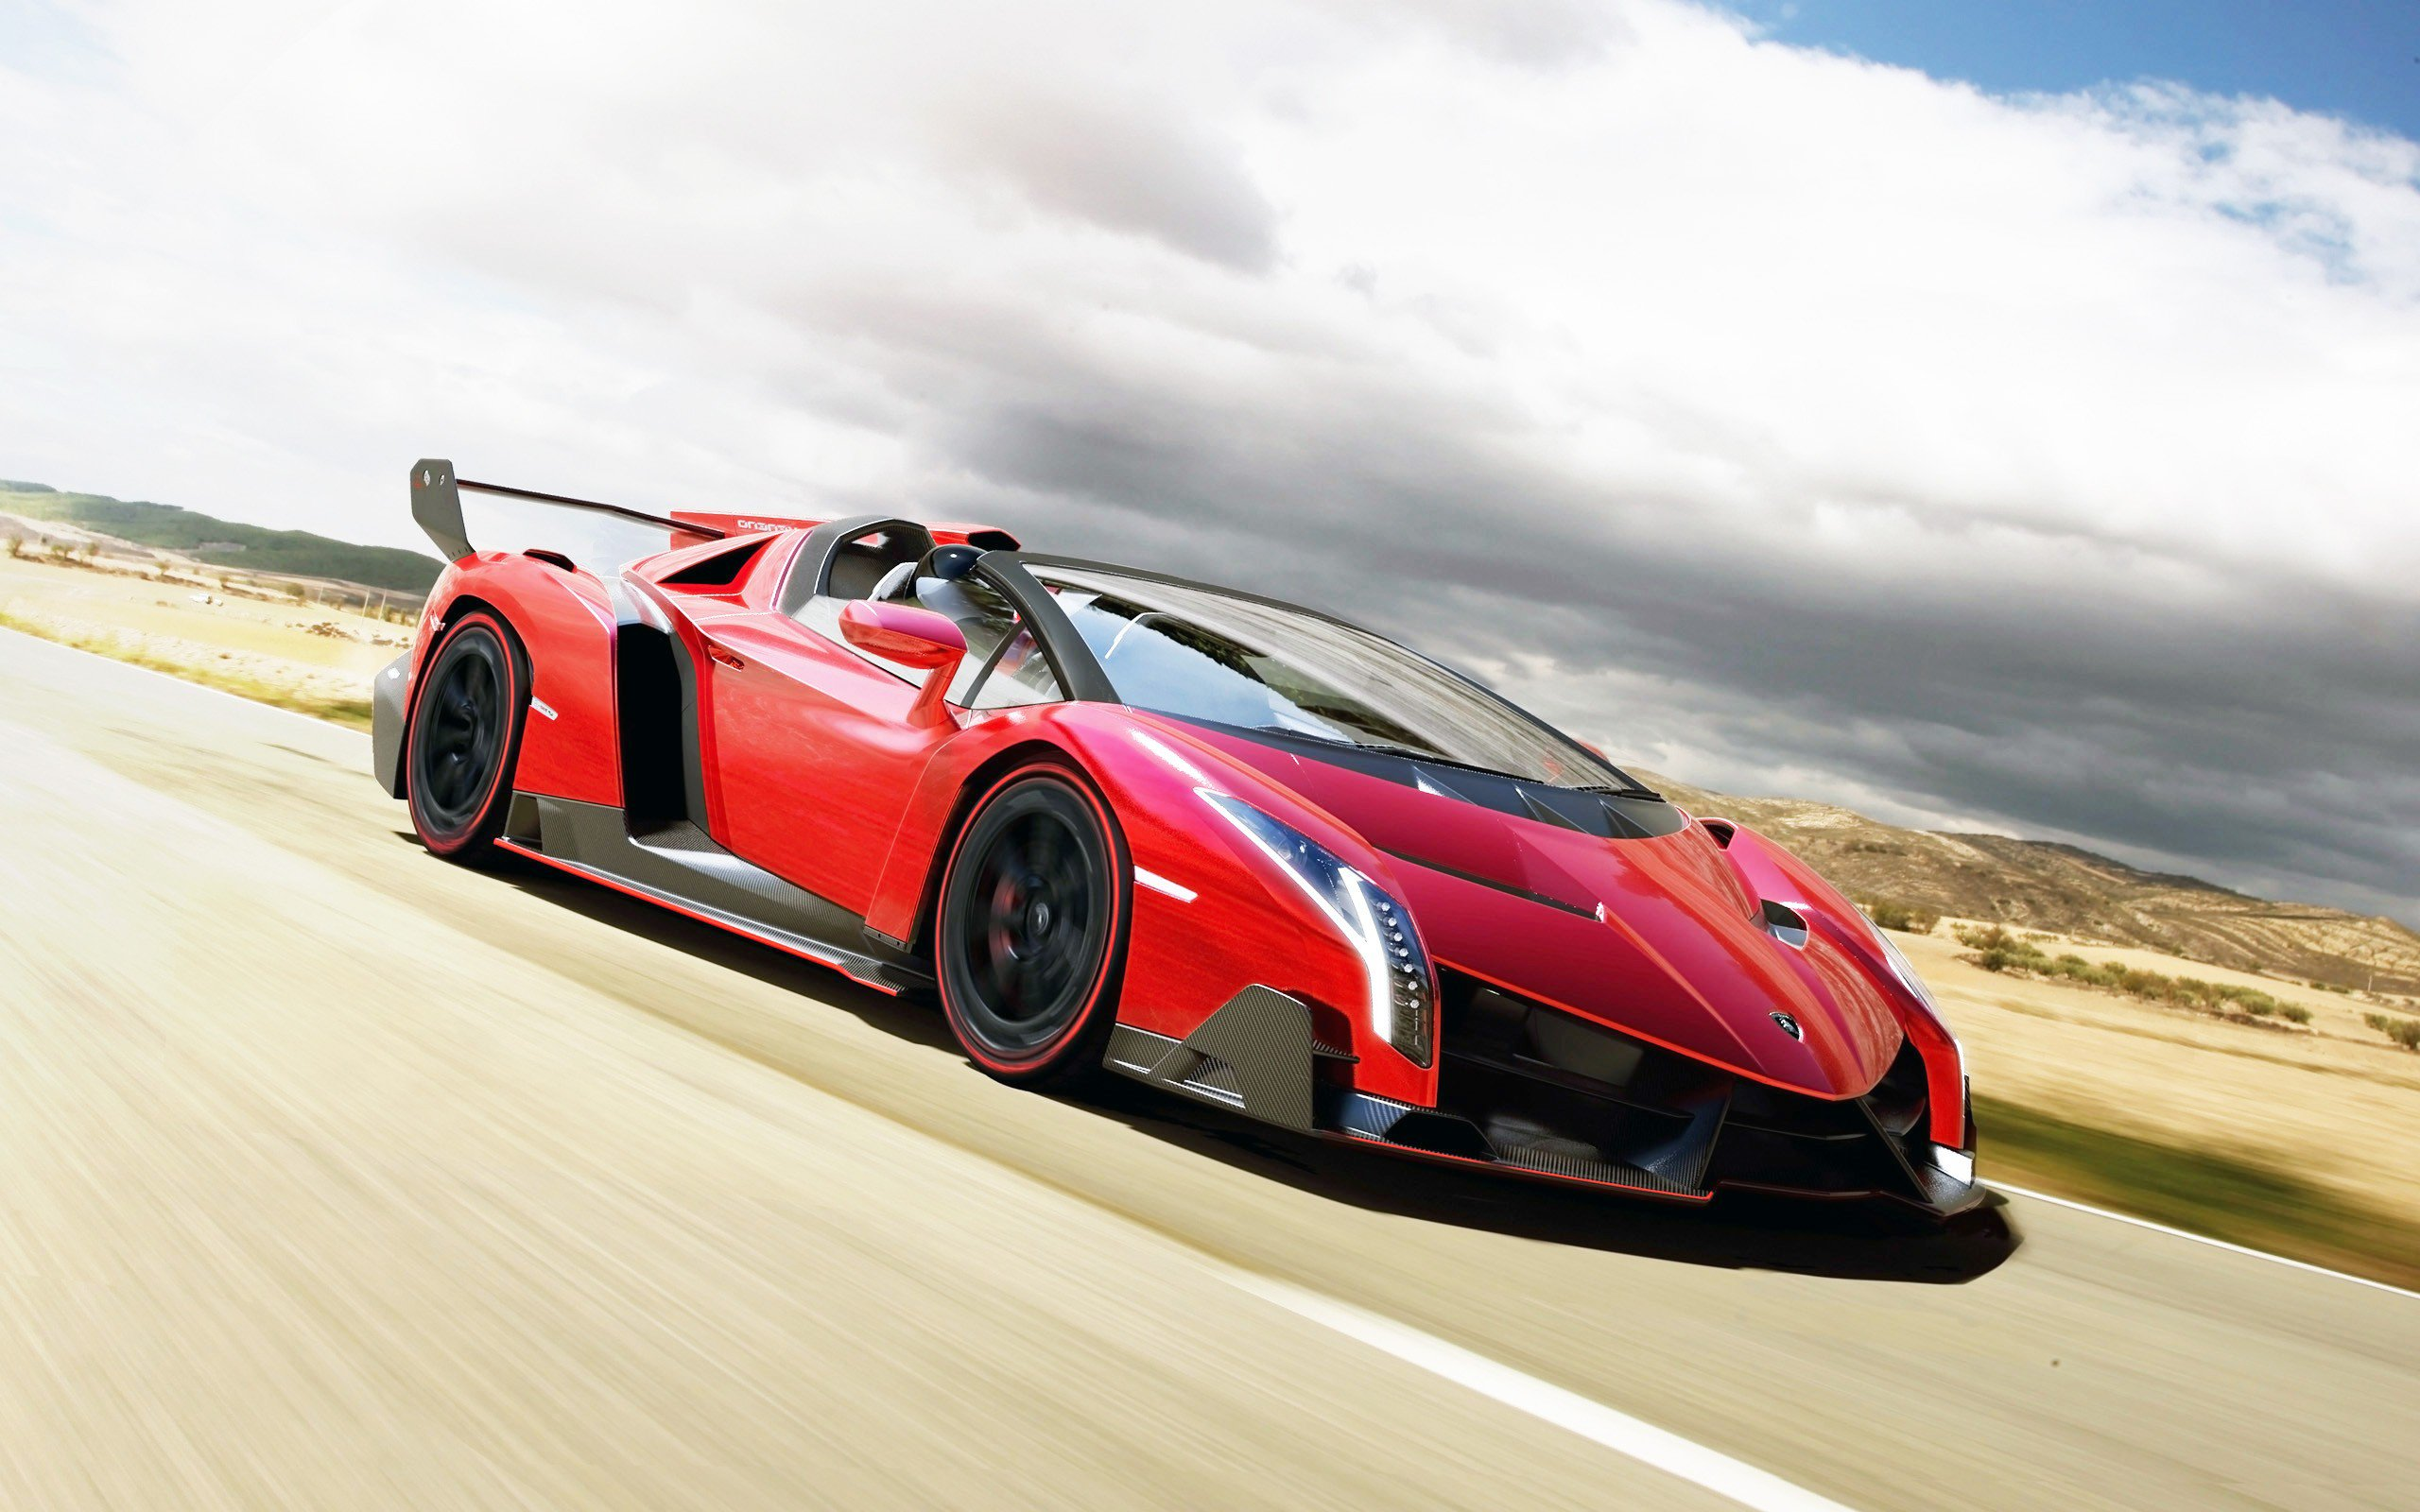 lamborghini veneno roadster hd cars 4k wallpapers images backgrounds photos and pictures. Black Bedroom Furniture Sets. Home Design Ideas